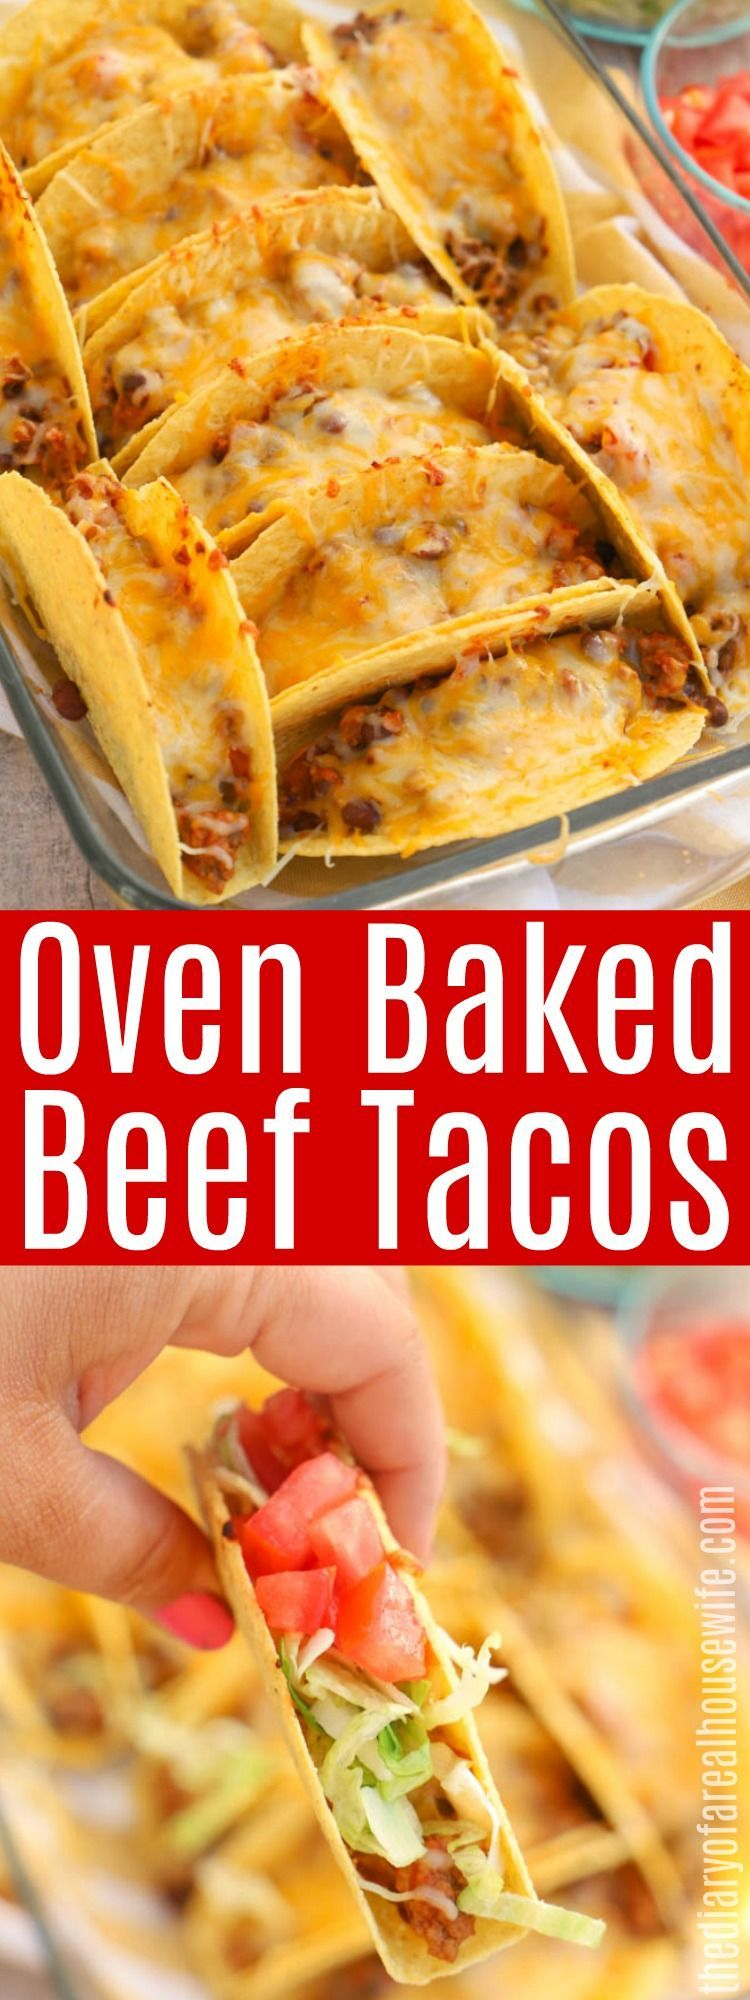 Oven Baked Beef Tacos • The Diary of a Real Housewife